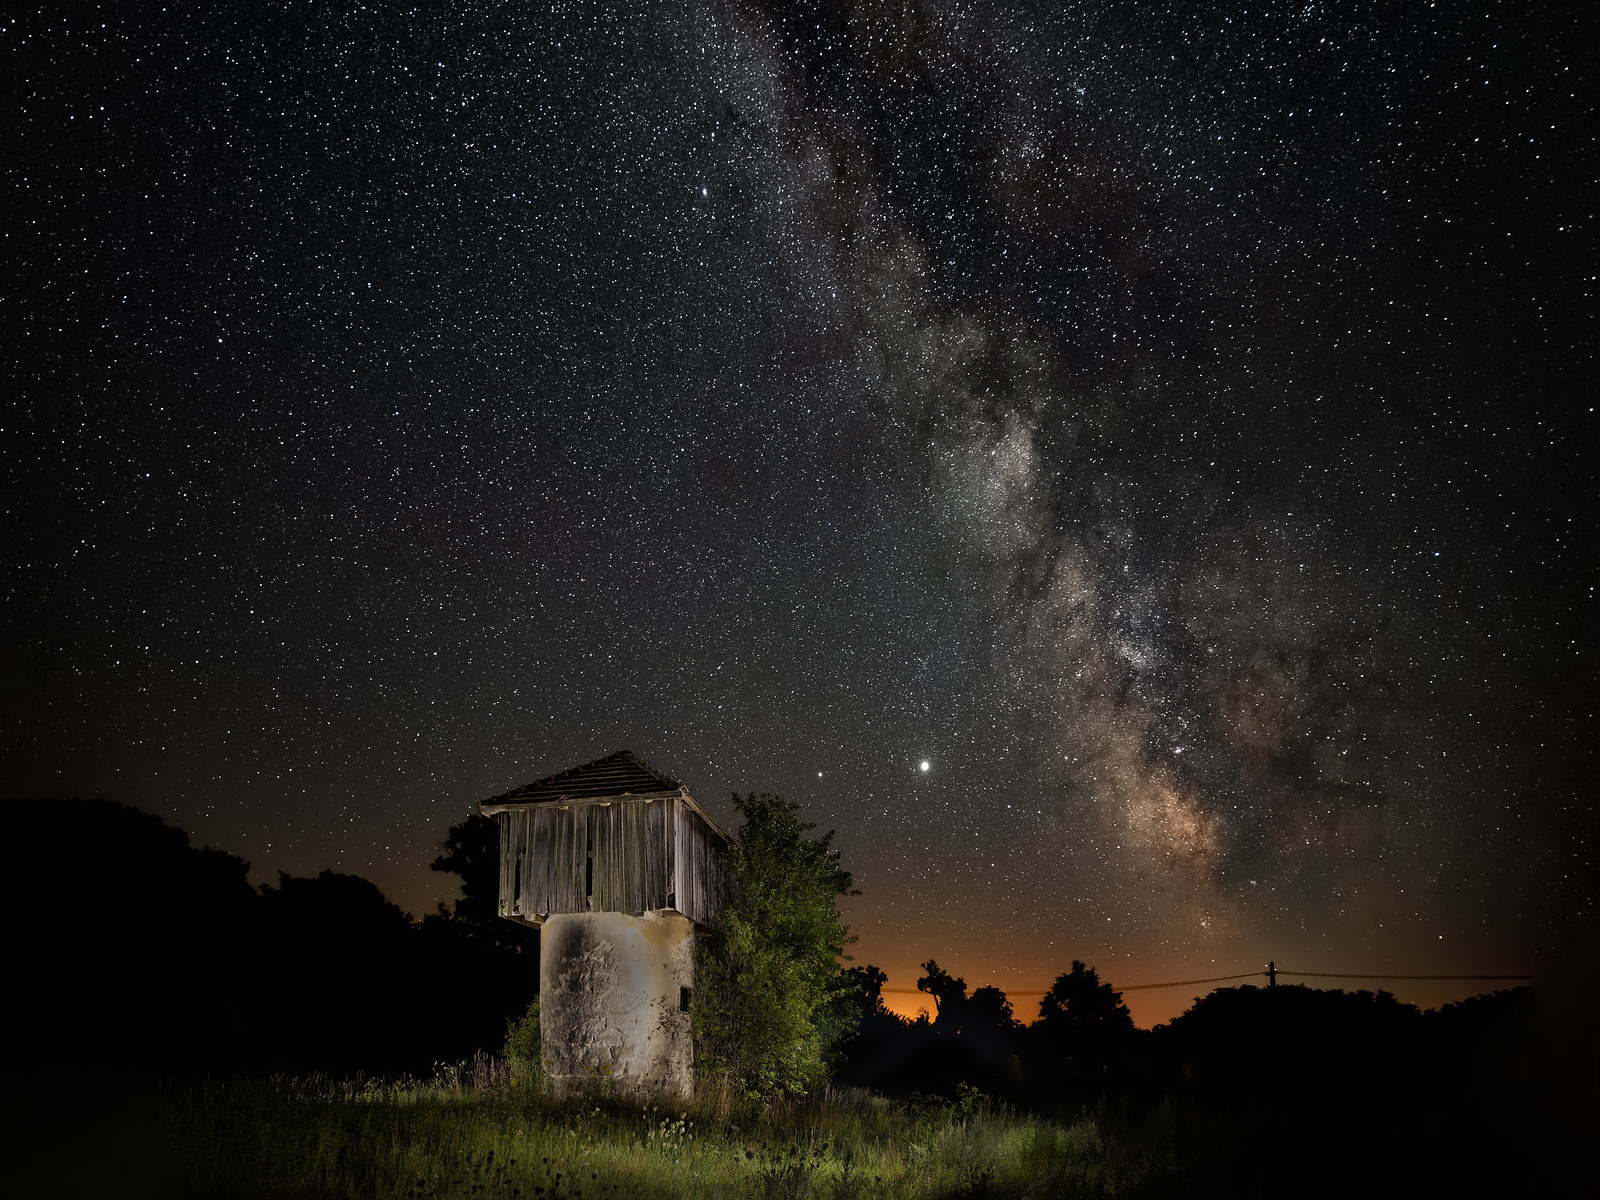 Old silo and the Milky Way